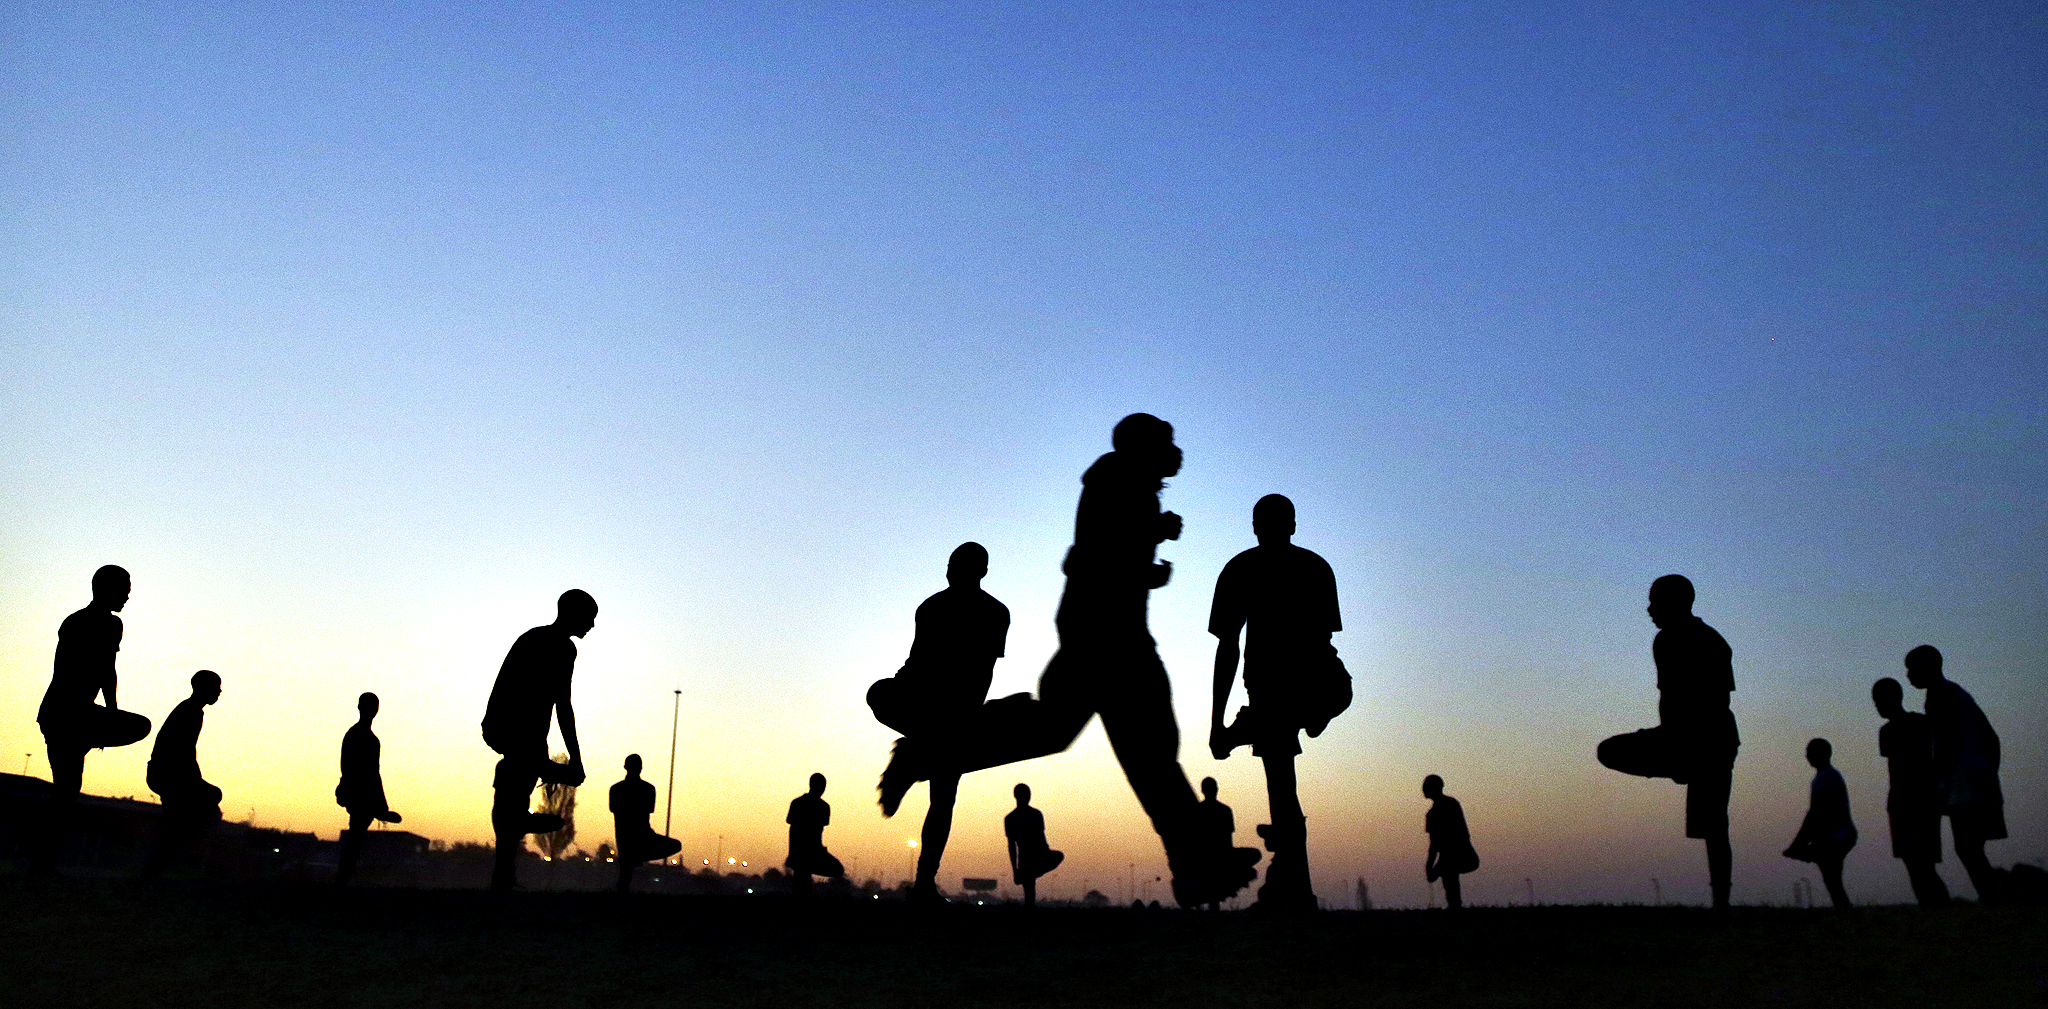 Young boys warm up before playing soccer on a dusty field in Soweto, South Africa